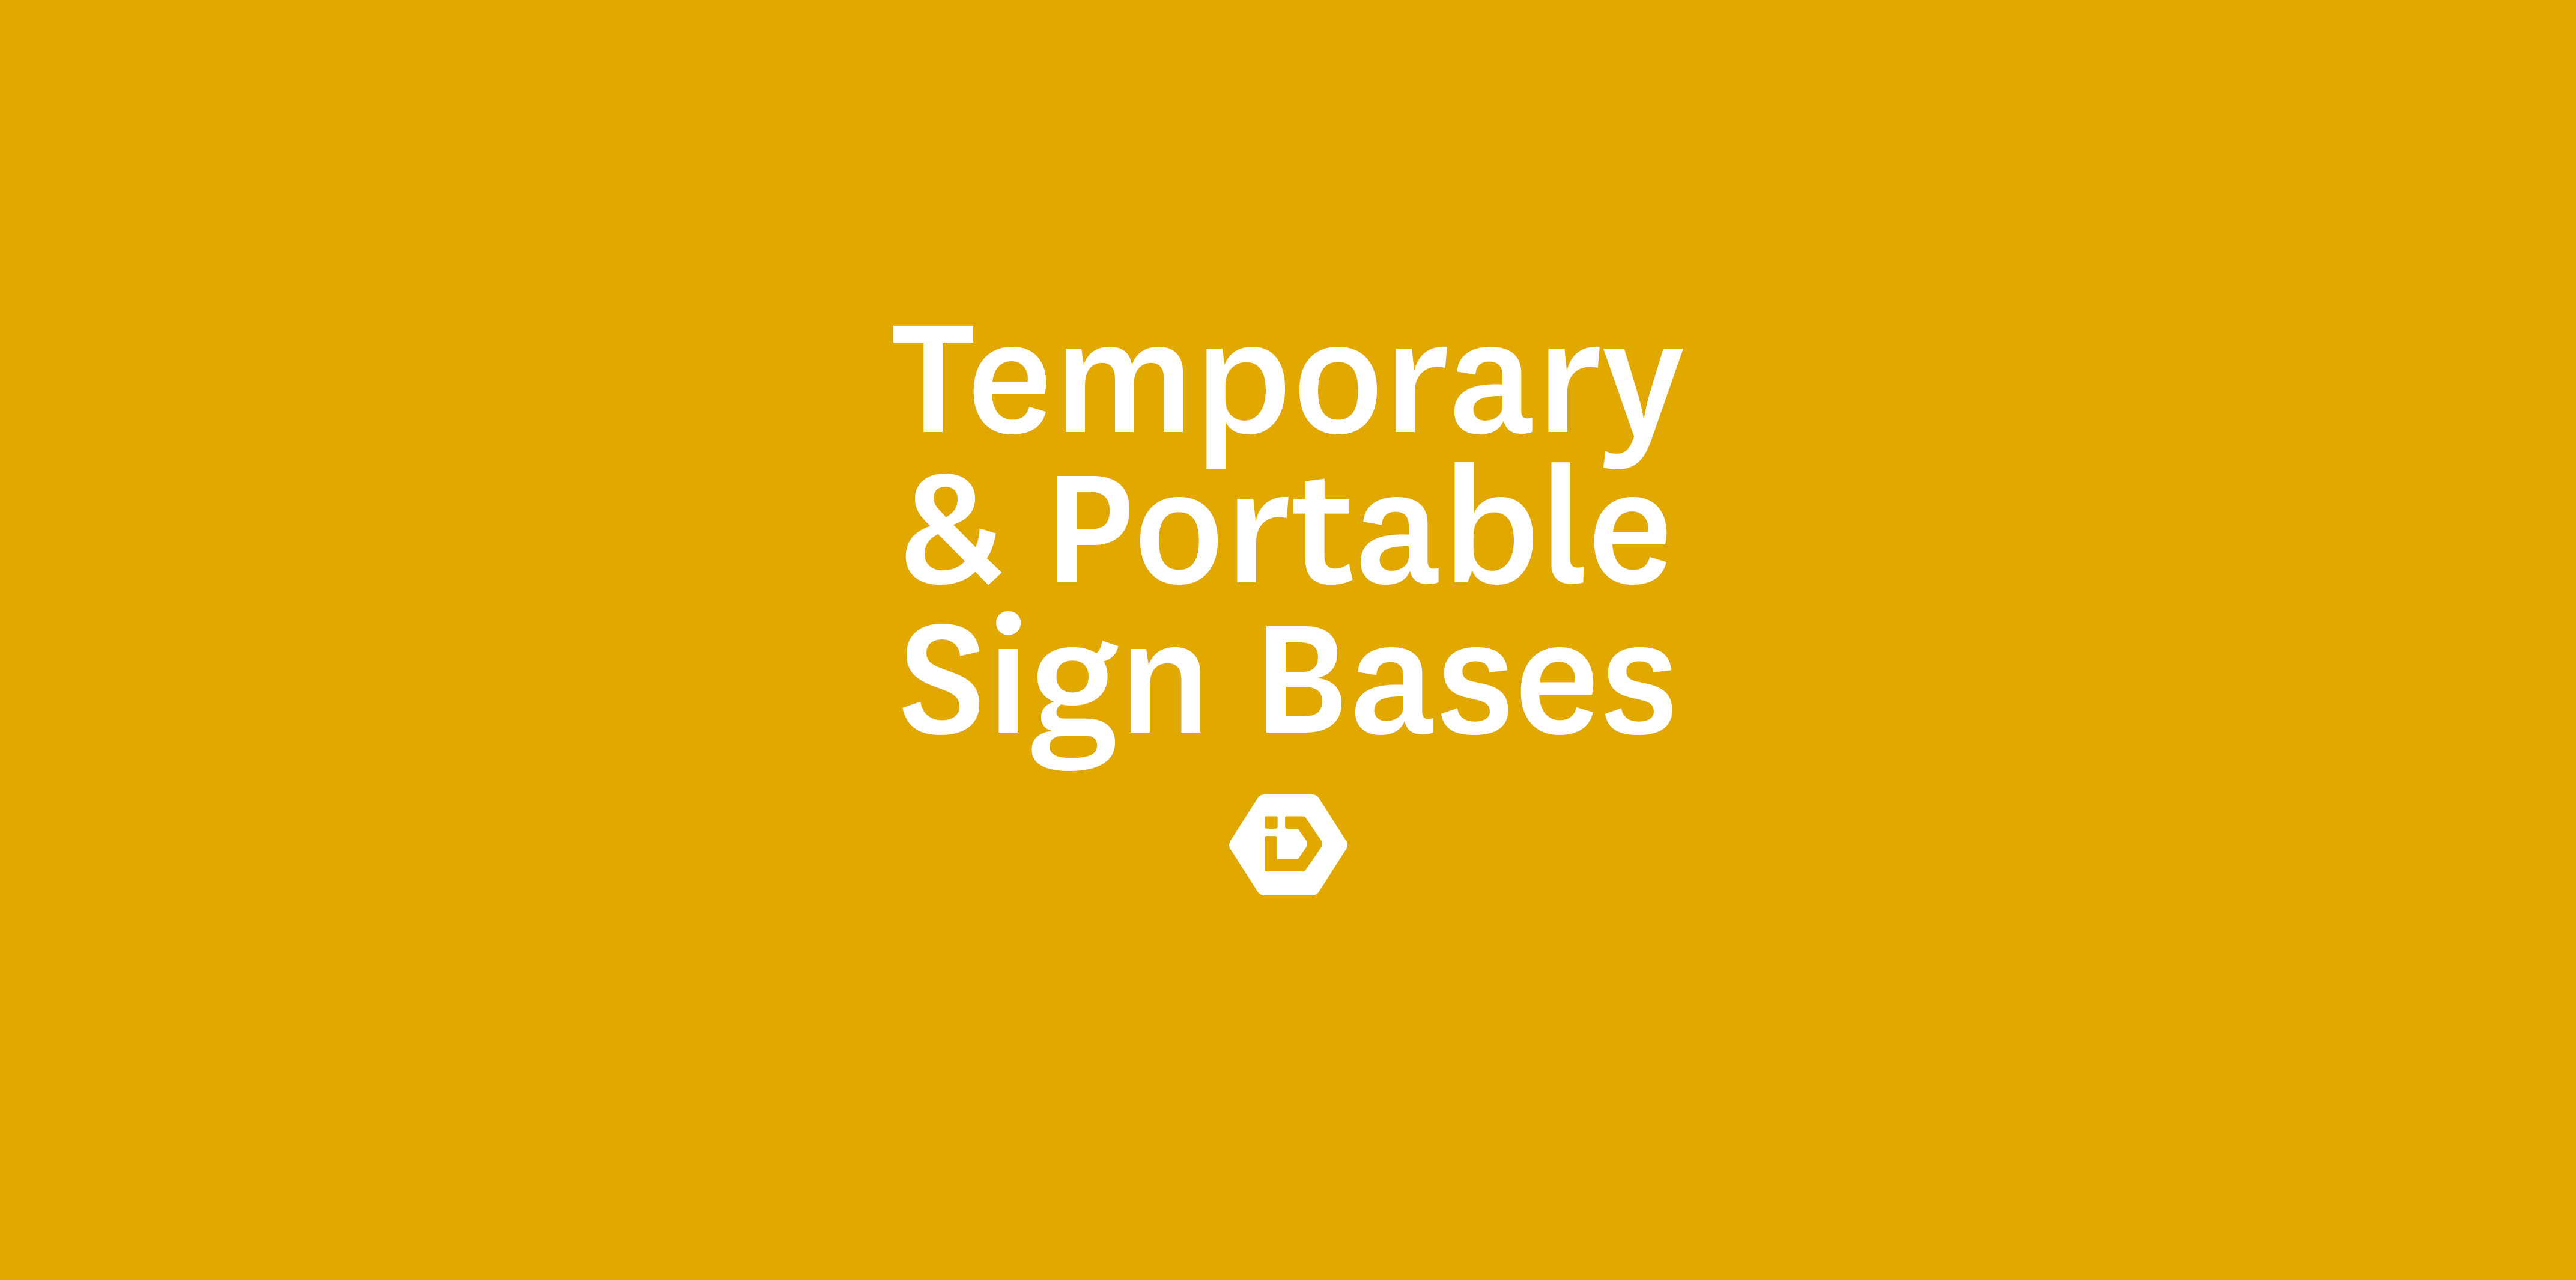 Temporary & Portable Sign Bases